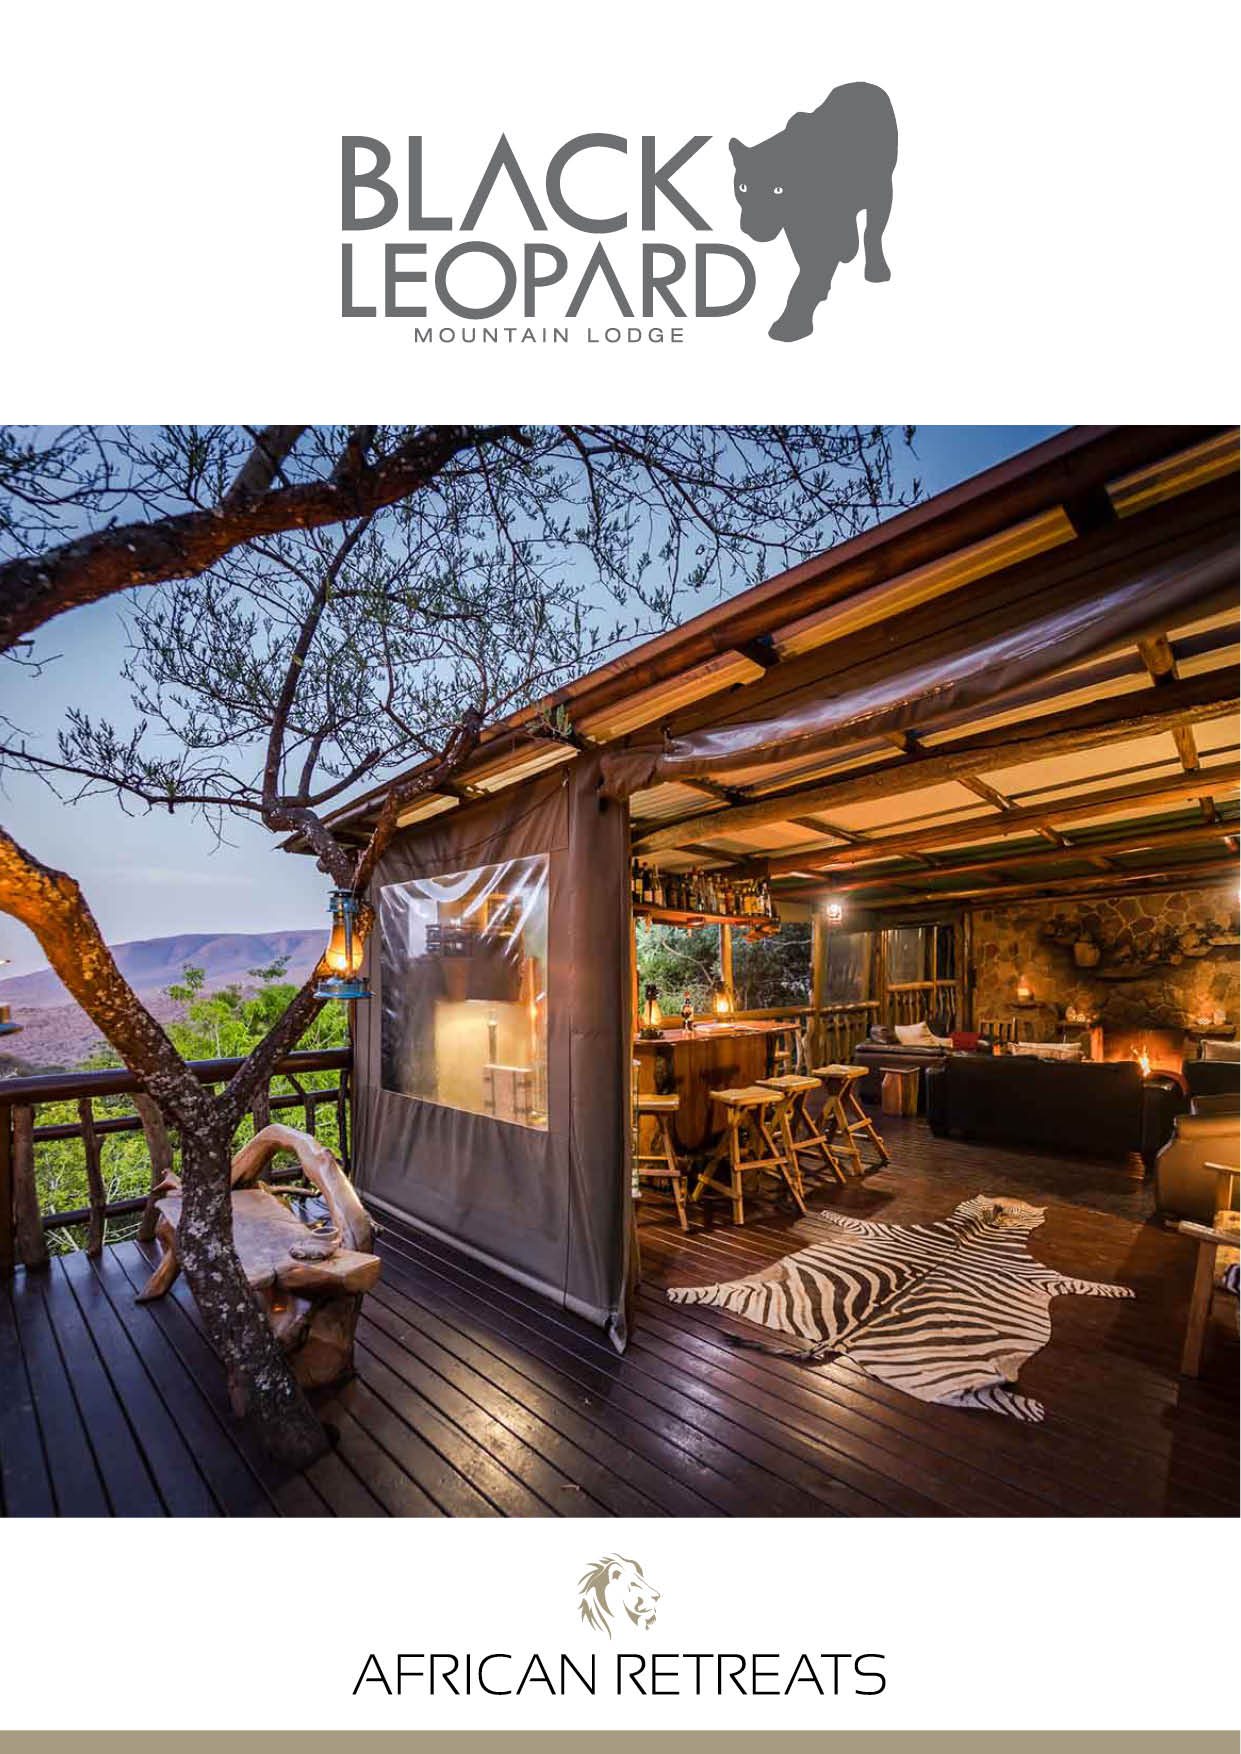 Black Leopard Mountain Lodge Wetu Online Brochure